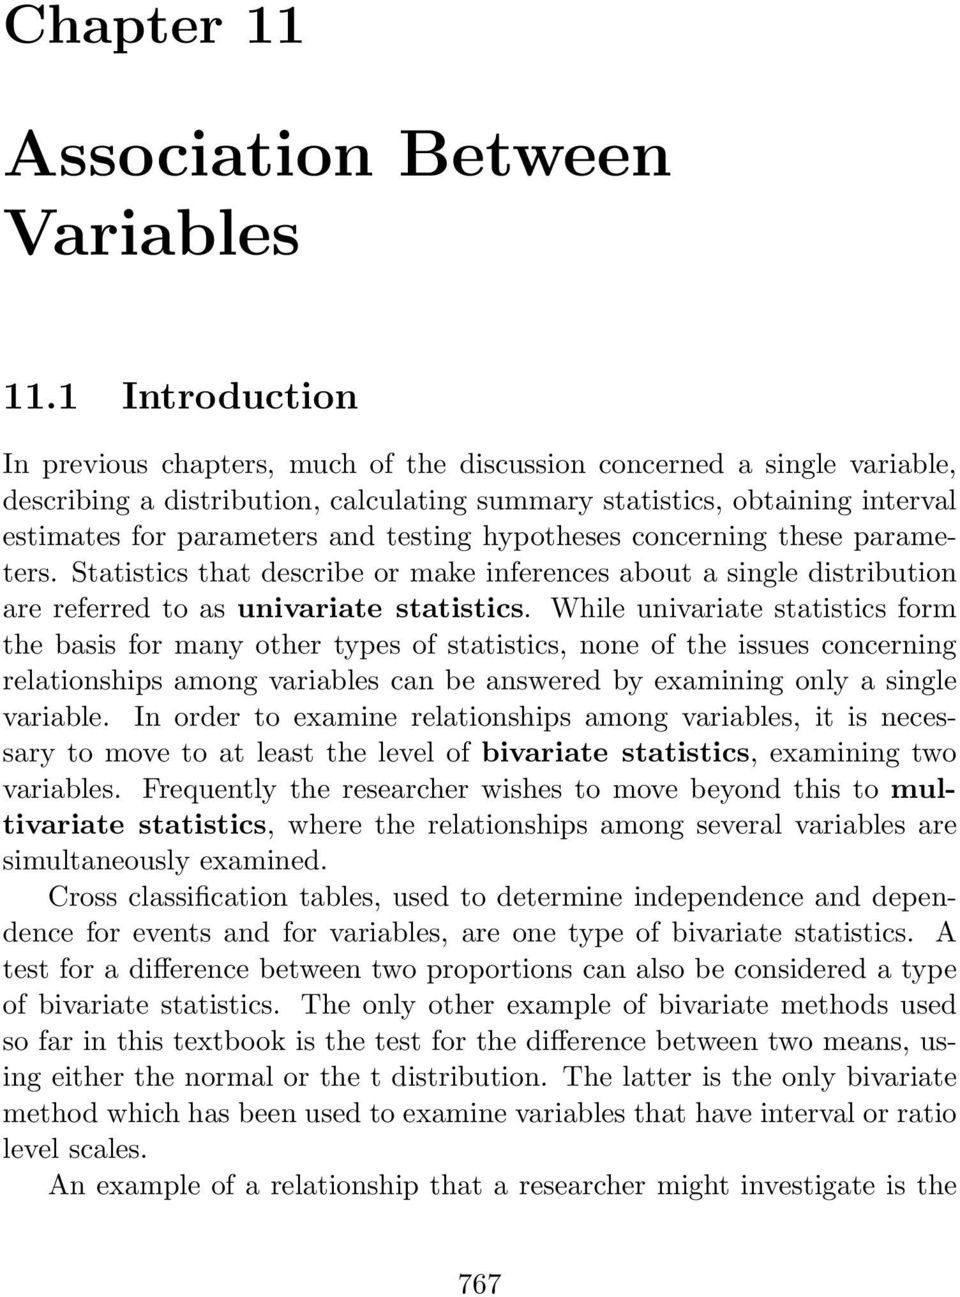 testing hypotheses concerning these parameters. Statistics that describe or make inferences about a single distribution are referred to as univariate statistics.